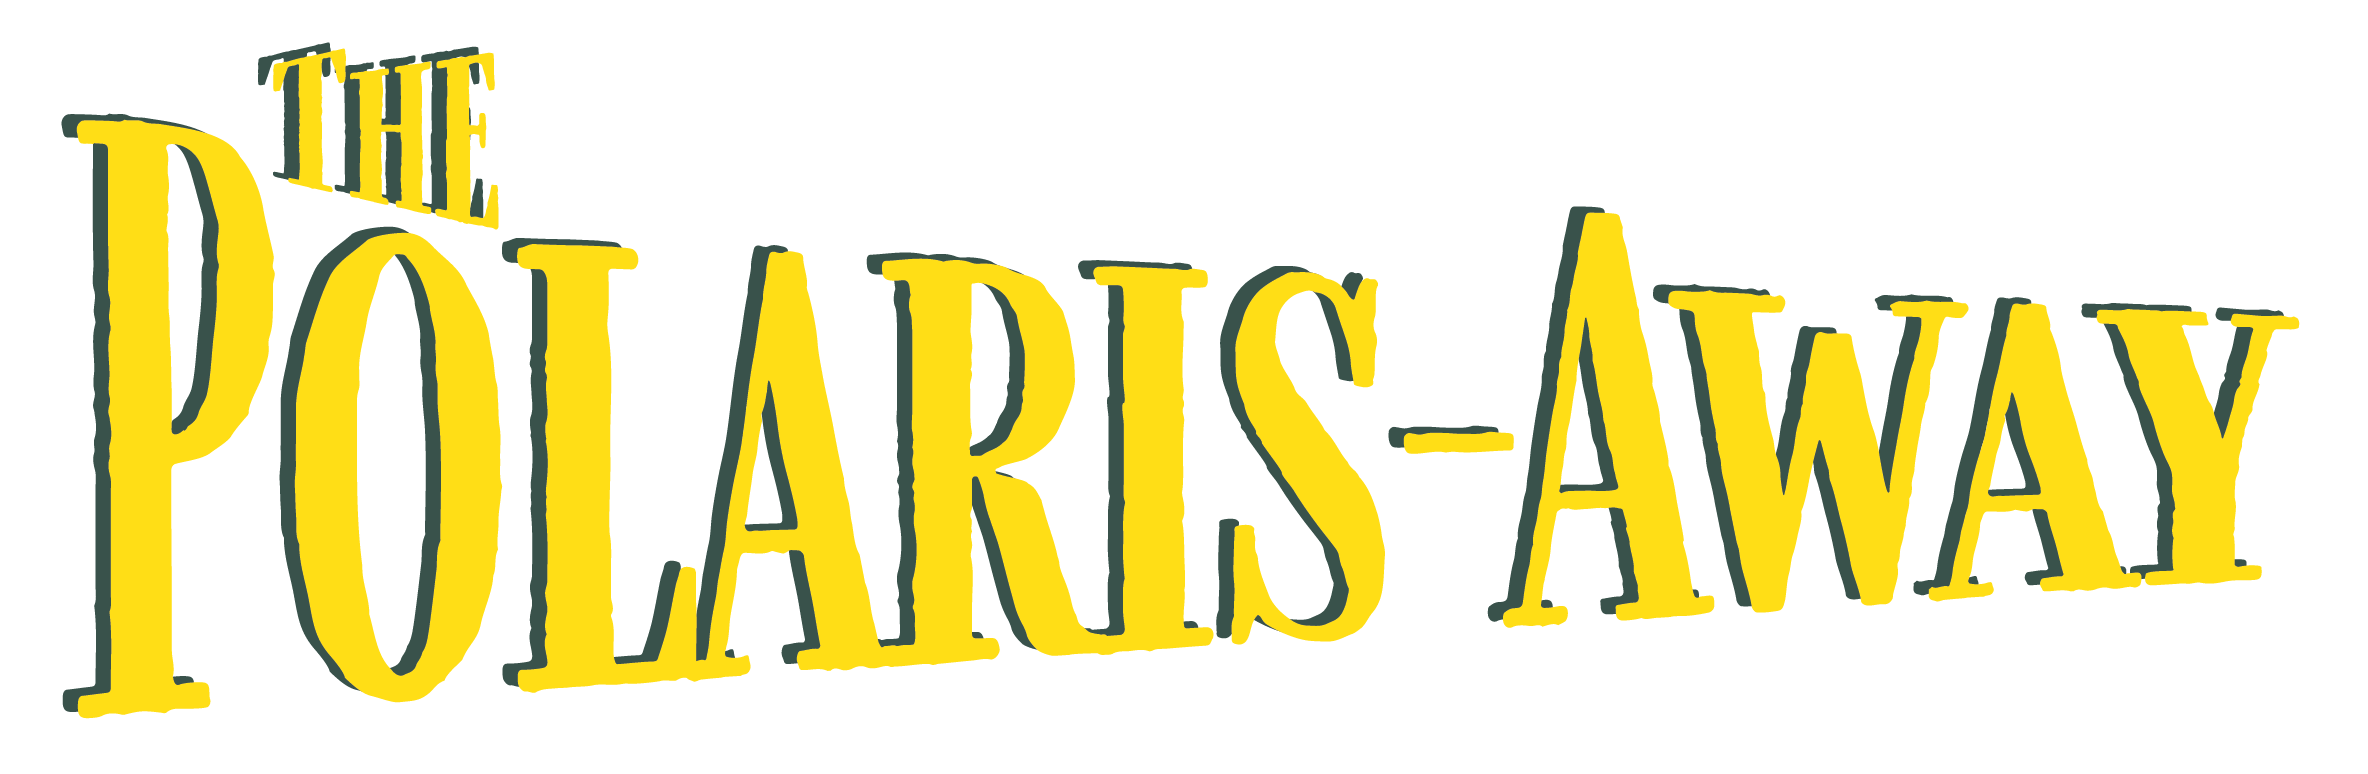 The Polaris-Away logo